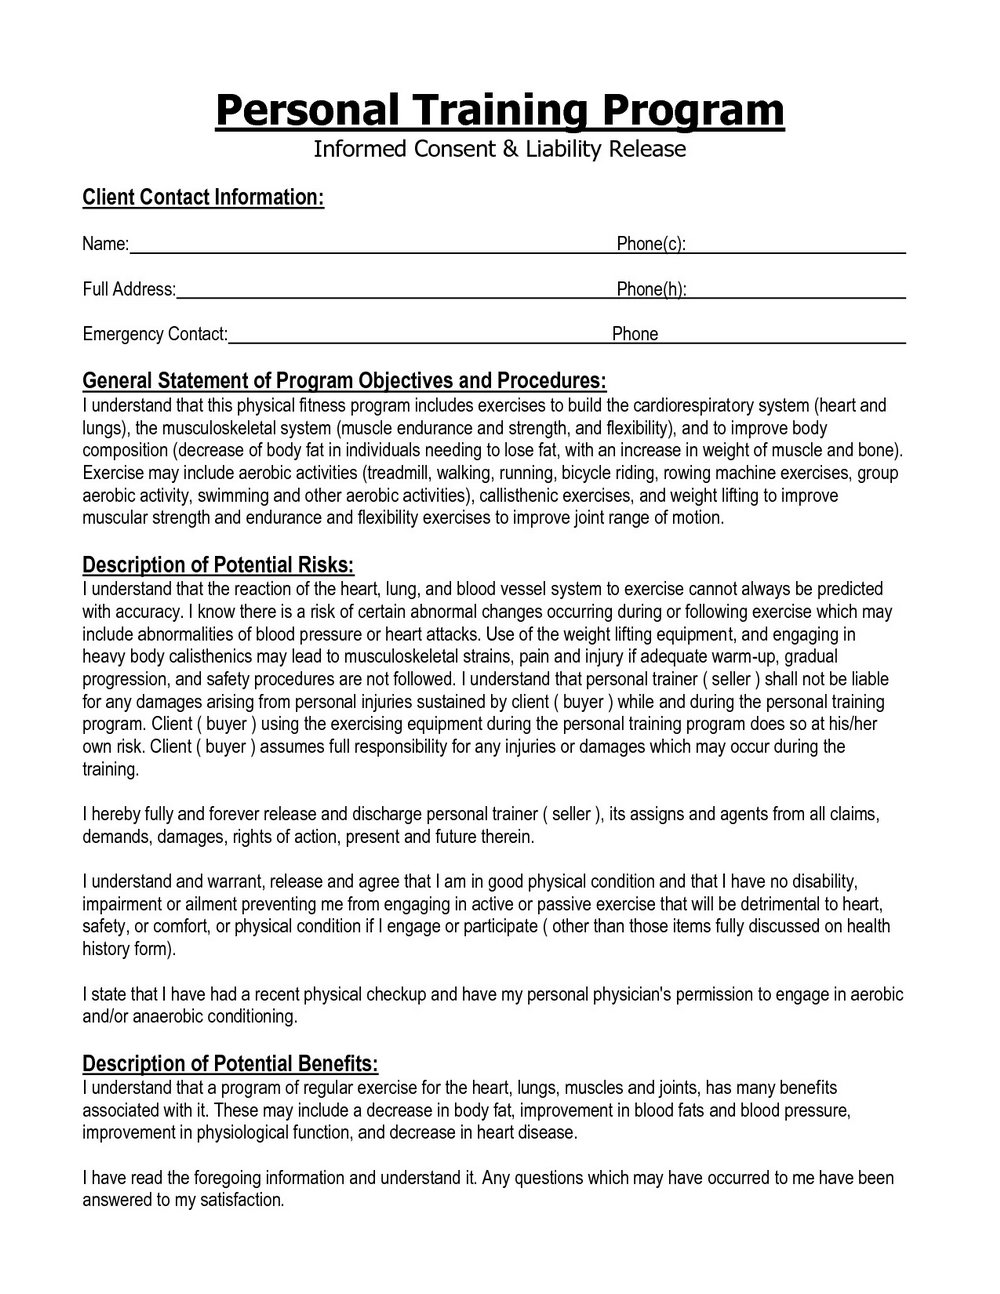 Personal Trainer Liability Waiver Template